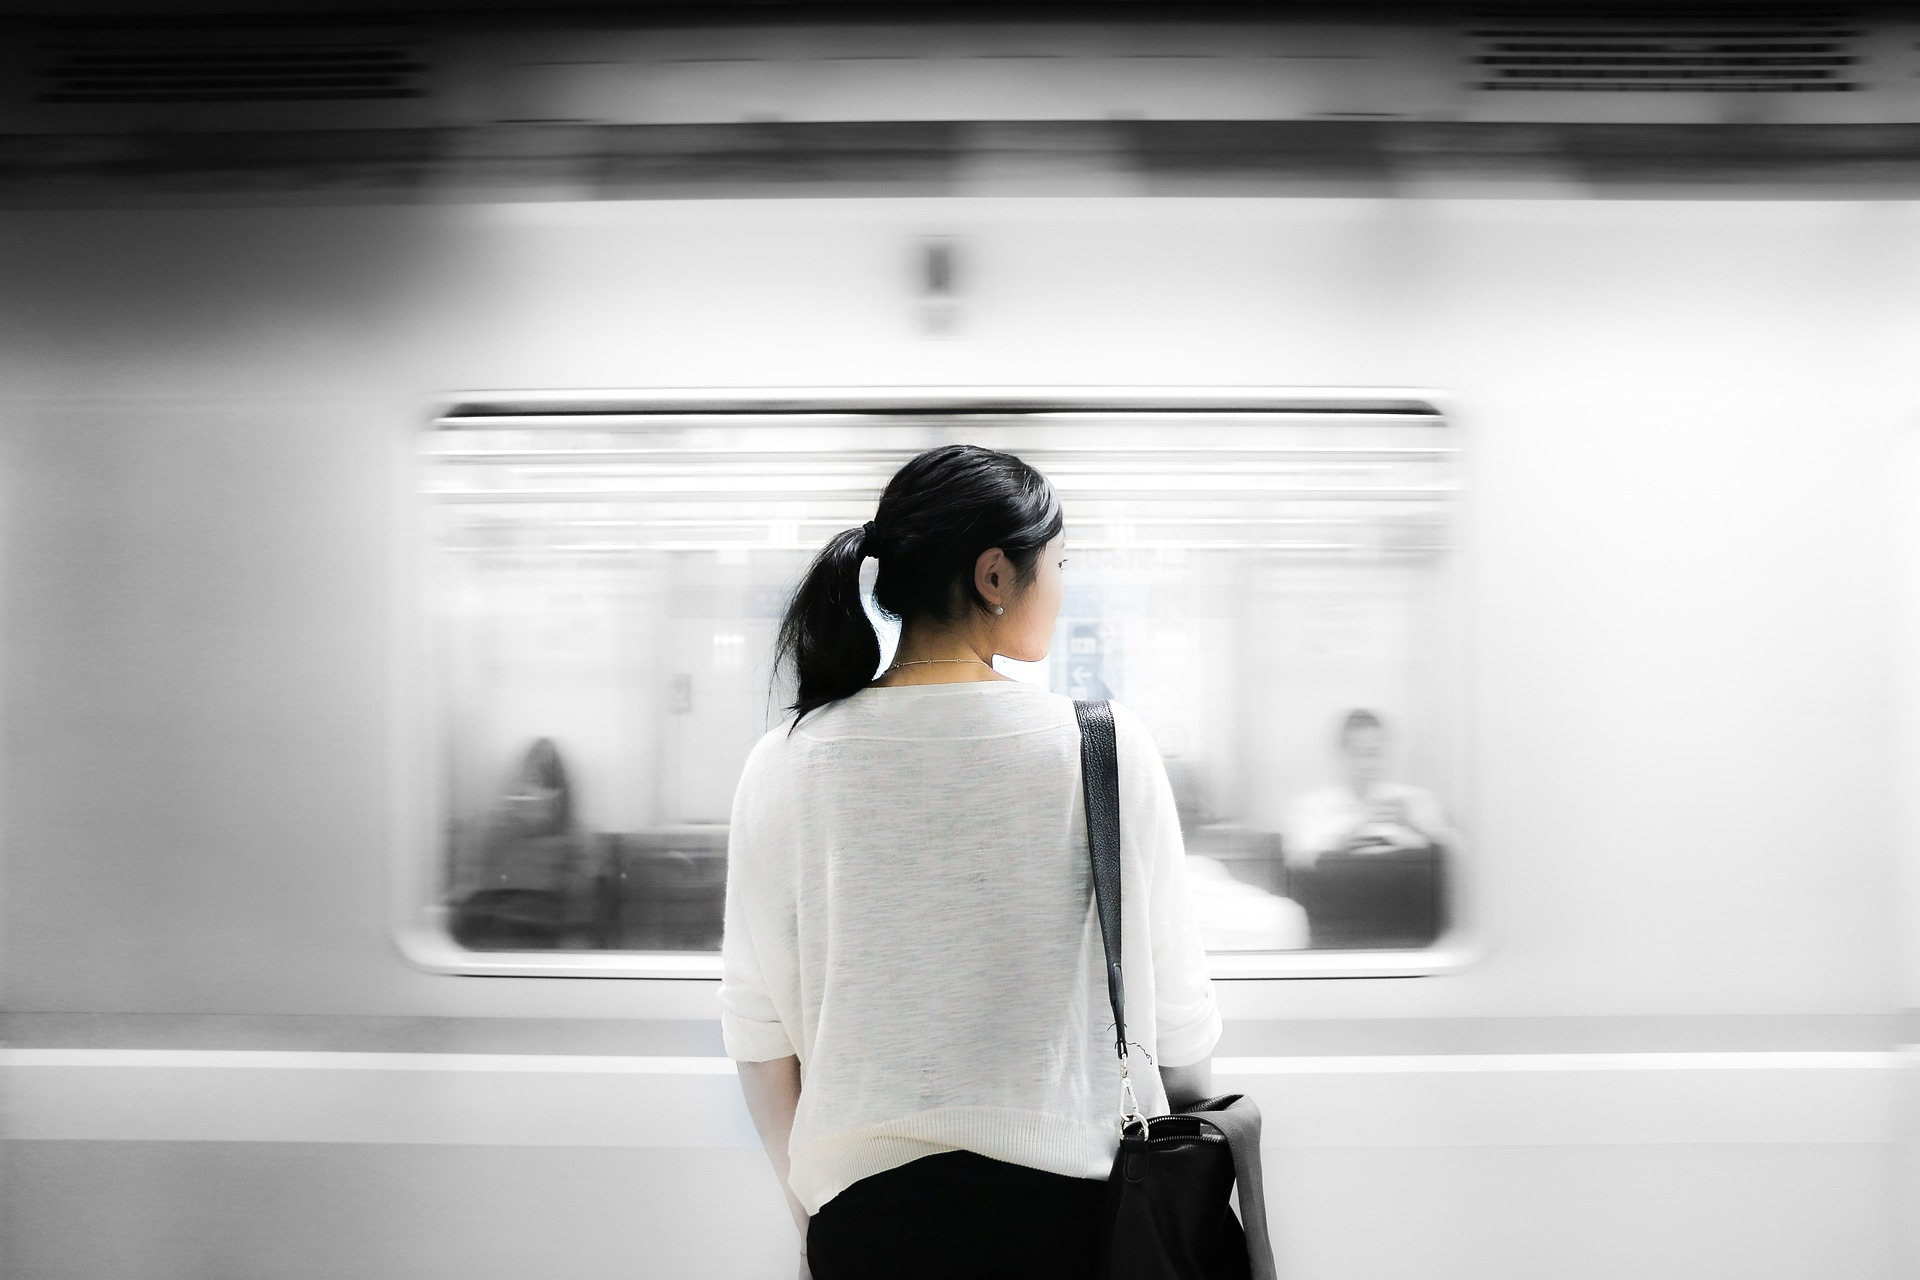 Asian American woman standing at train station.